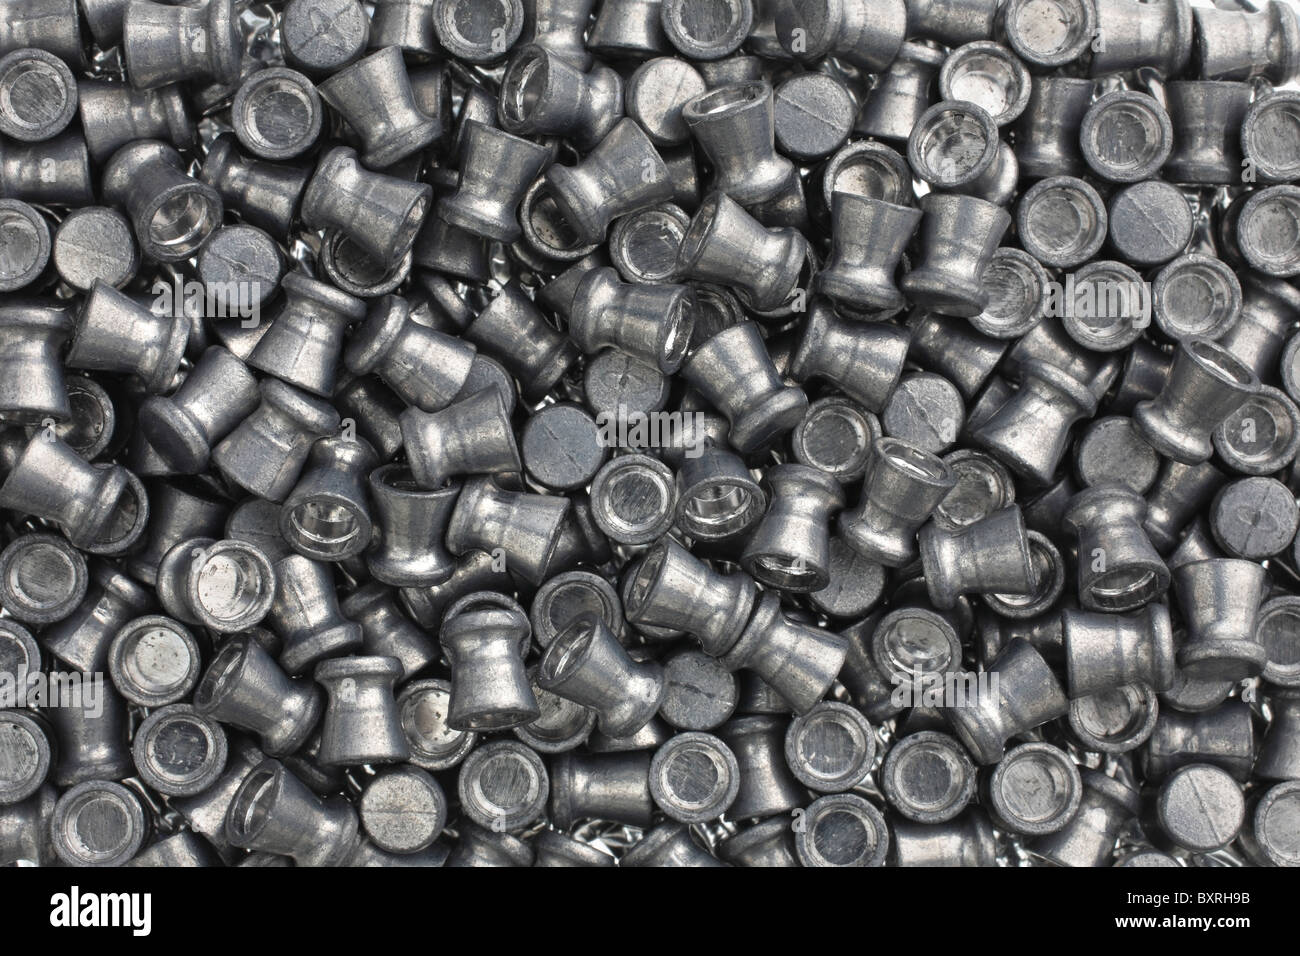 close-up view of large pile of lead BB pellets - Stock Image